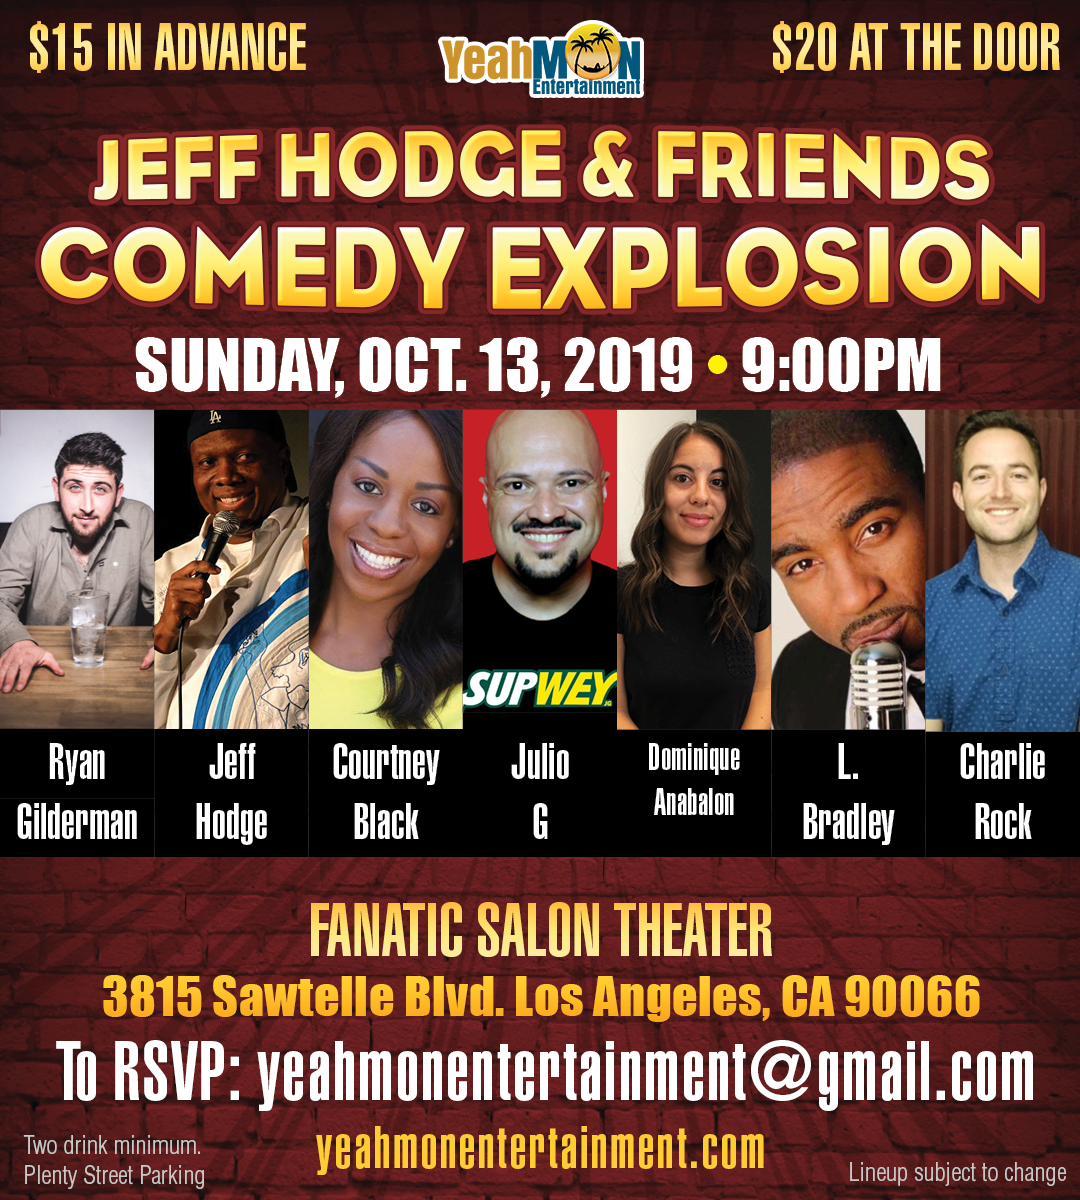 Jeff Hodge & Friends Comedy Explosio